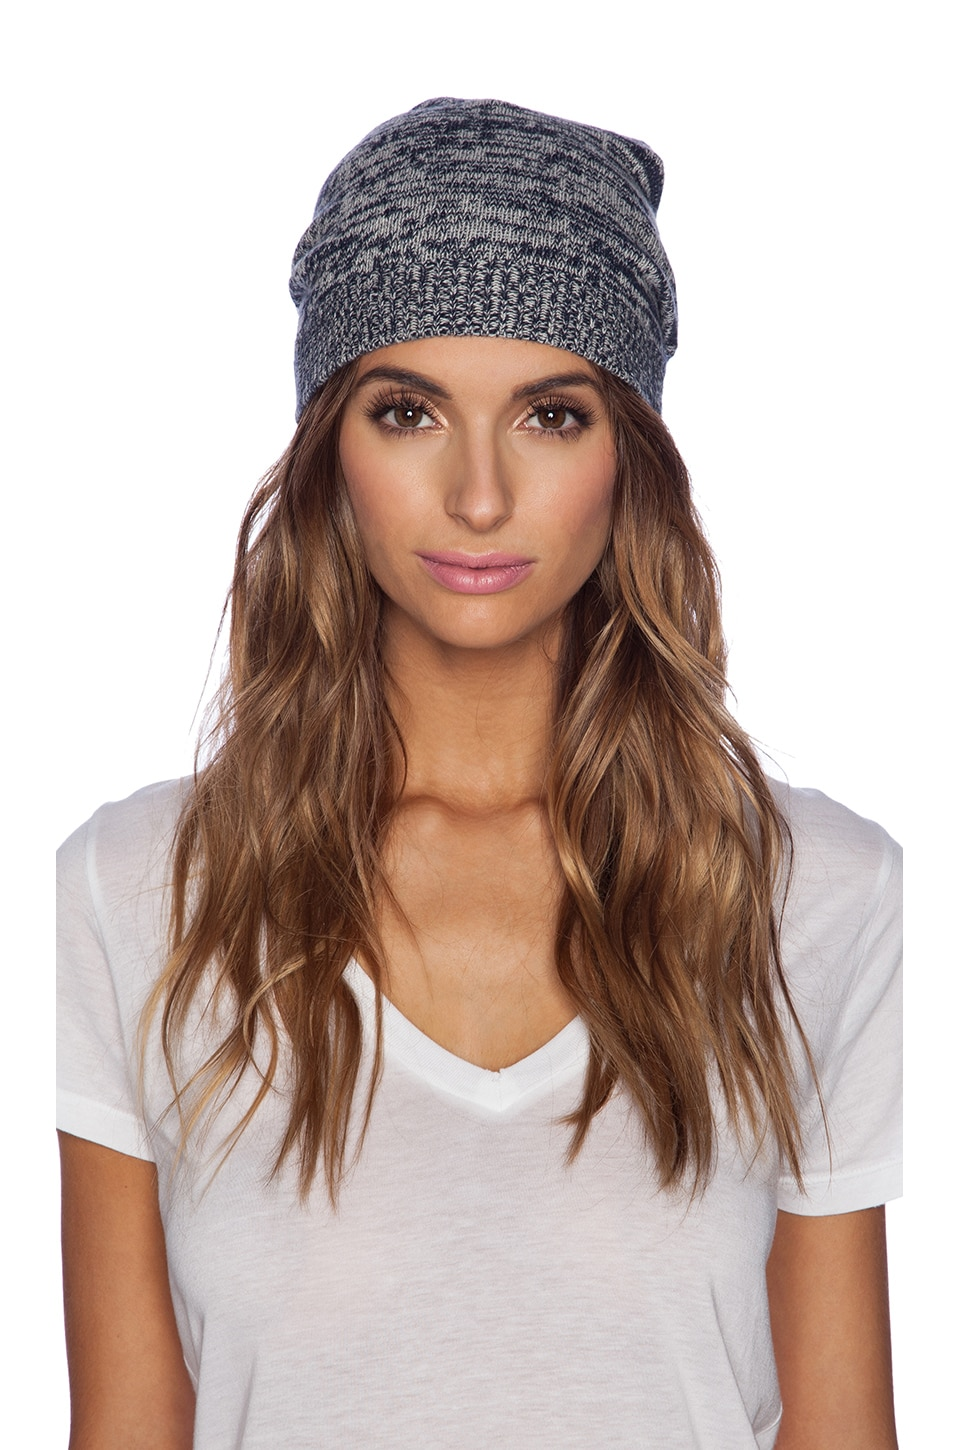 Autumn Cashmere Marled Beanie in Navy & Hemp